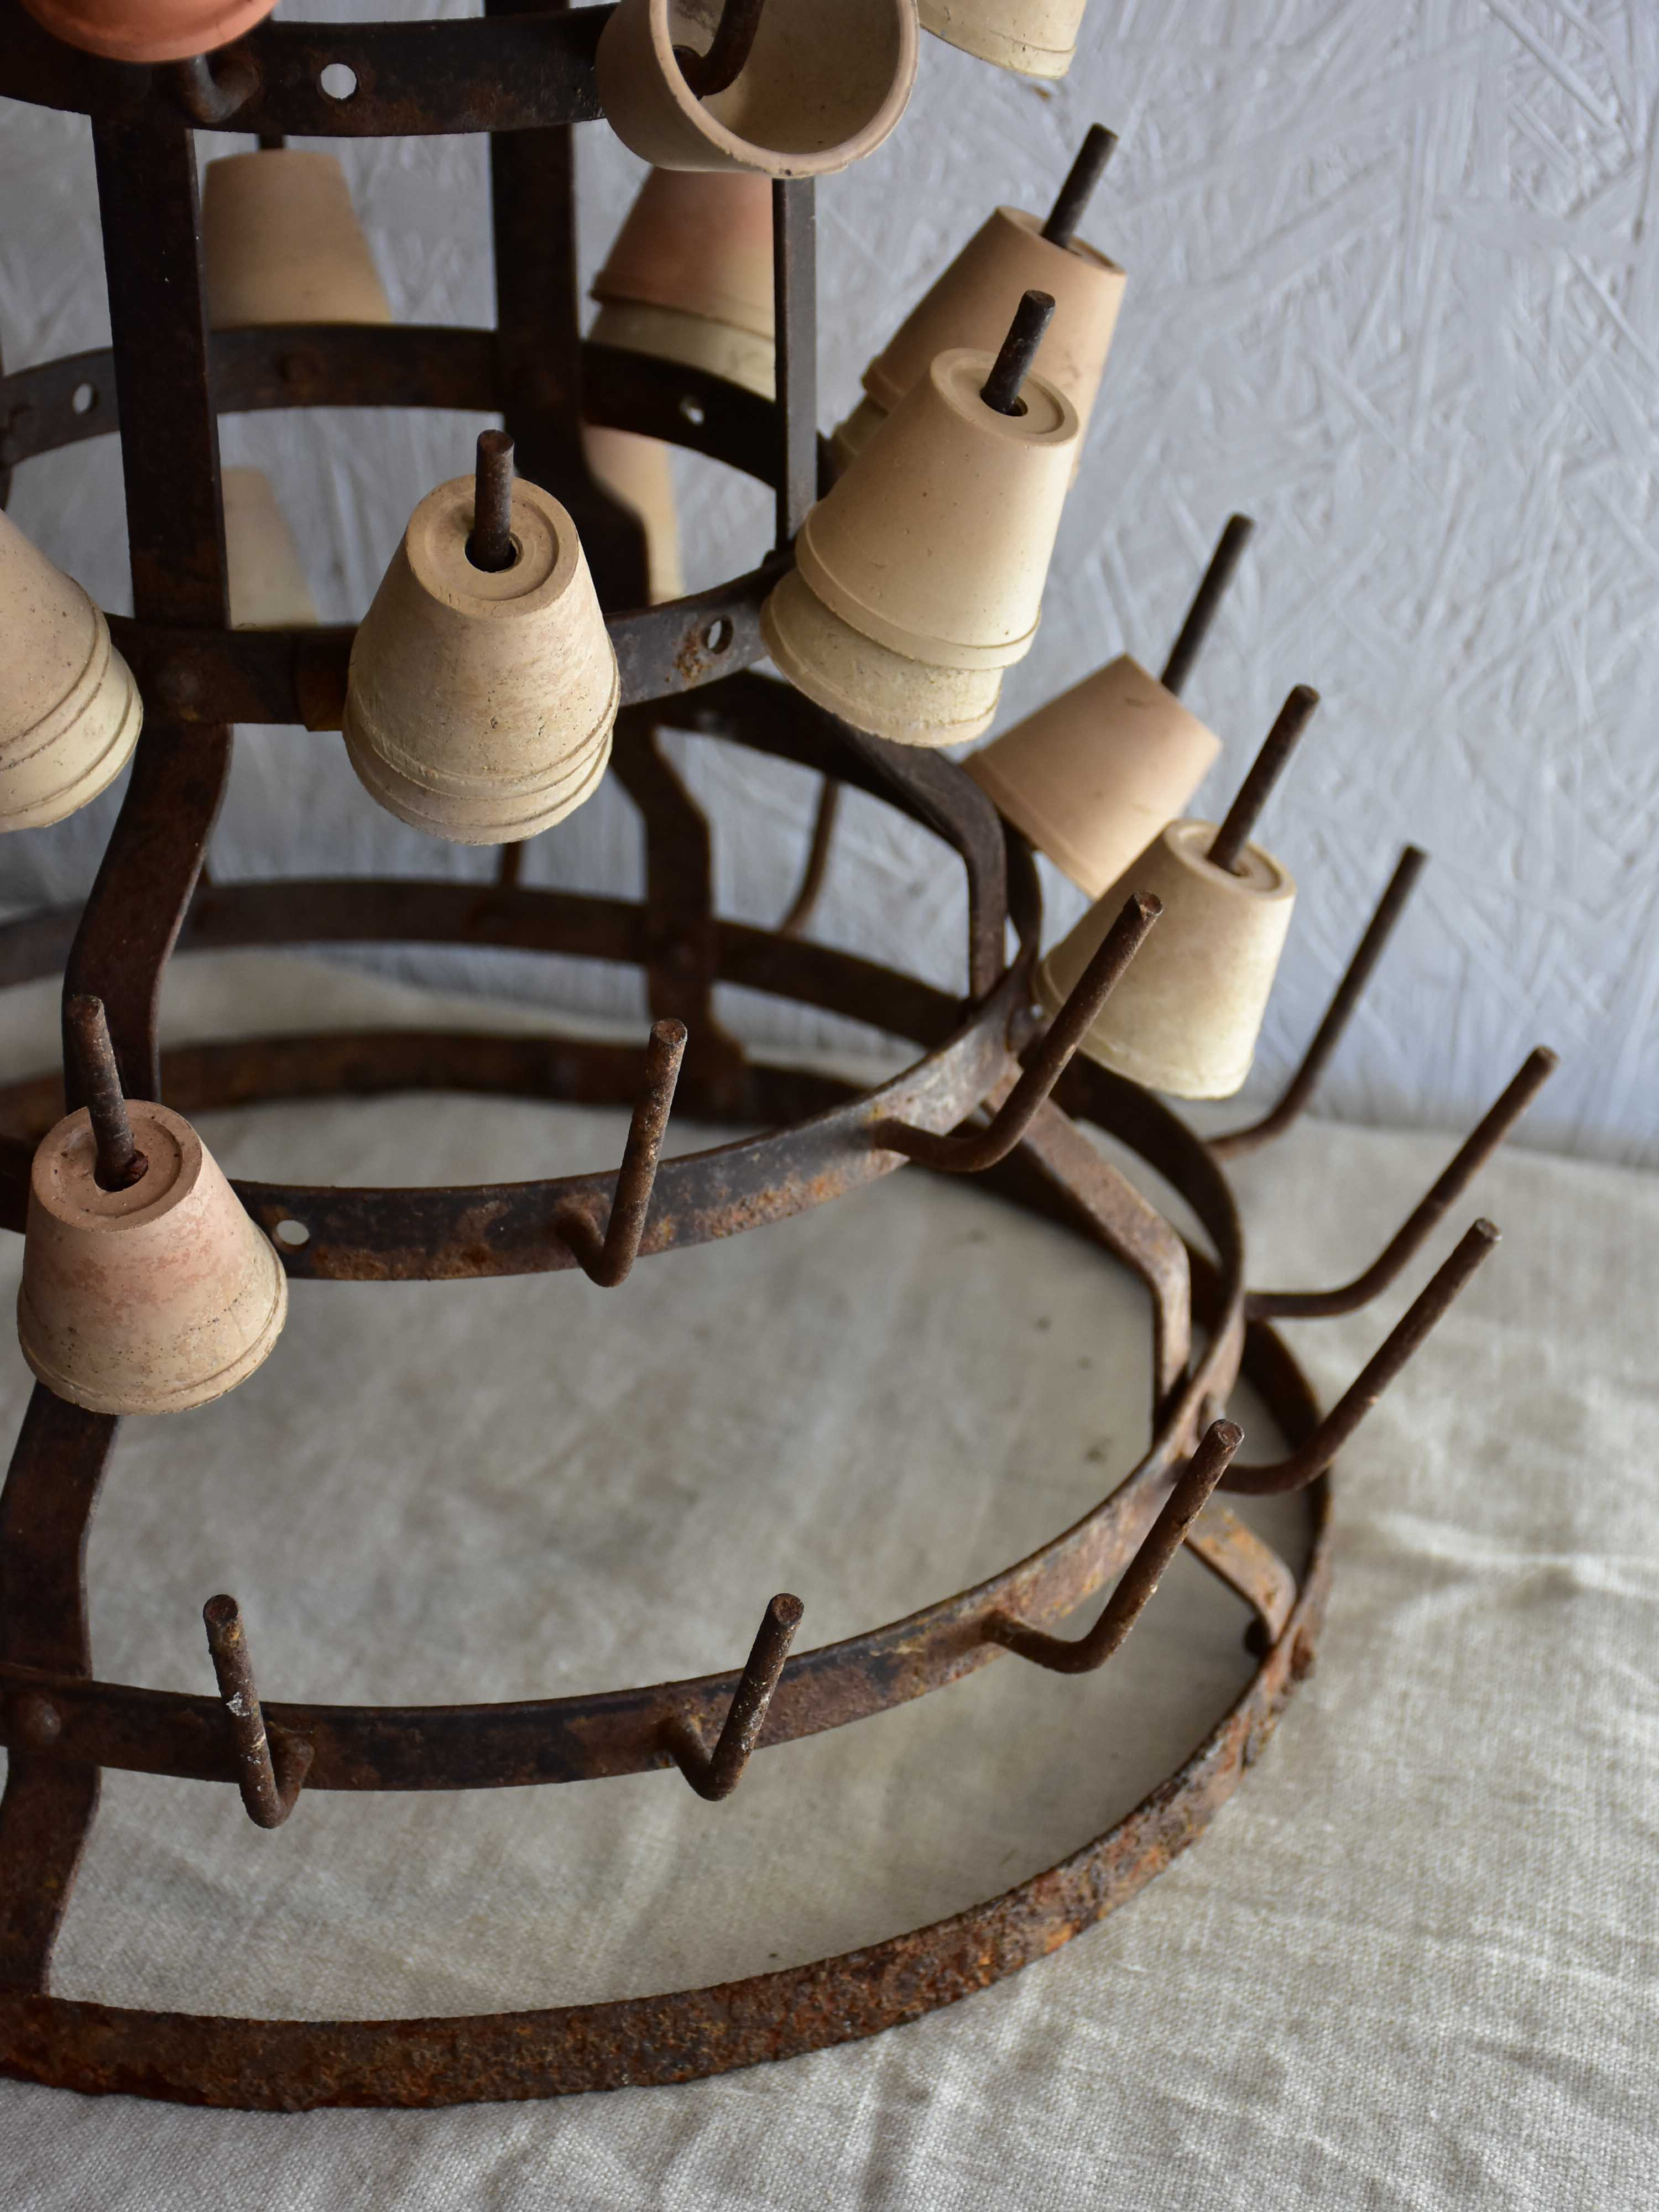 Vintage French bottle drying stand